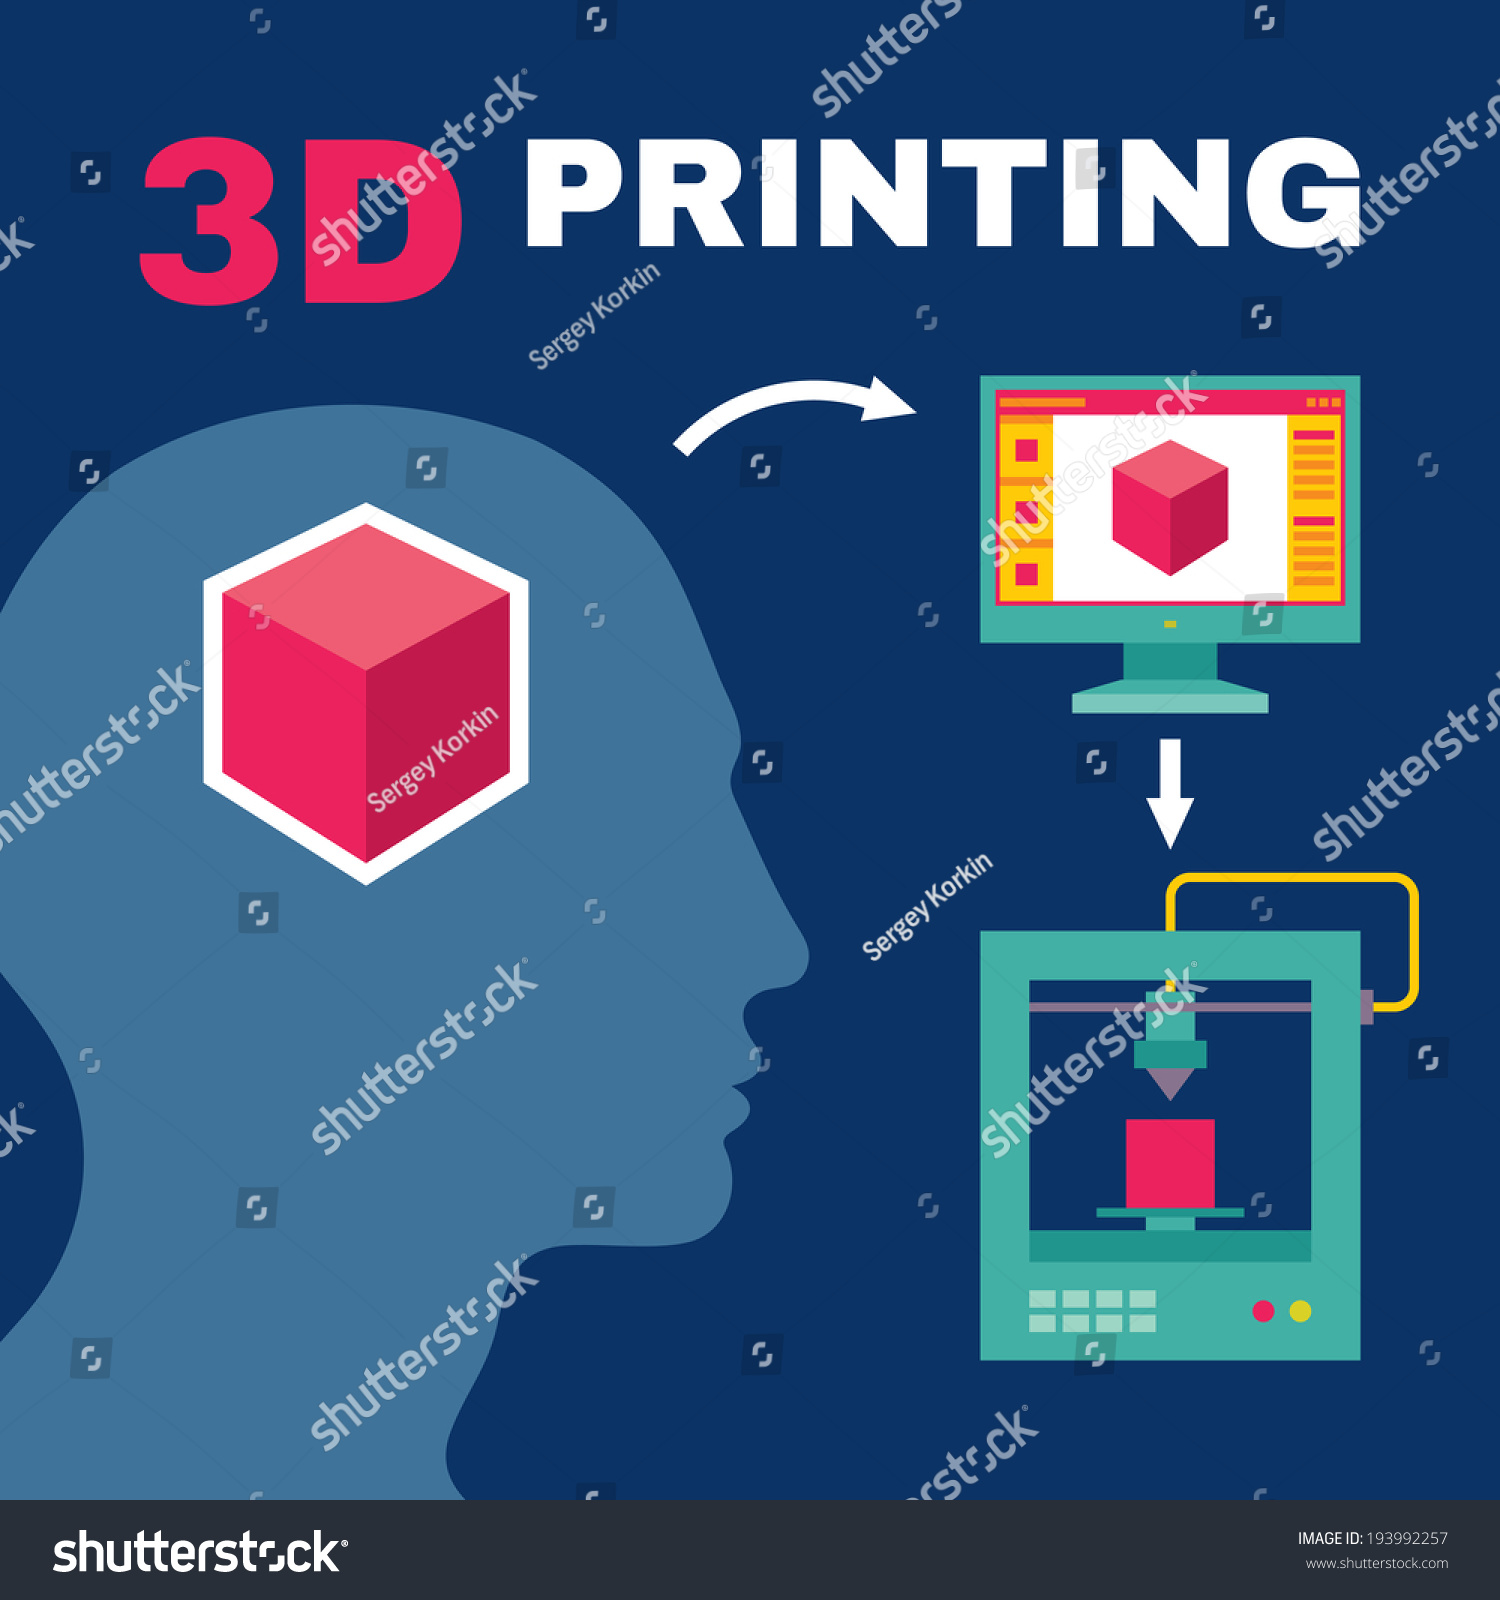 3d printing process human head creative stock vector 3d printing process